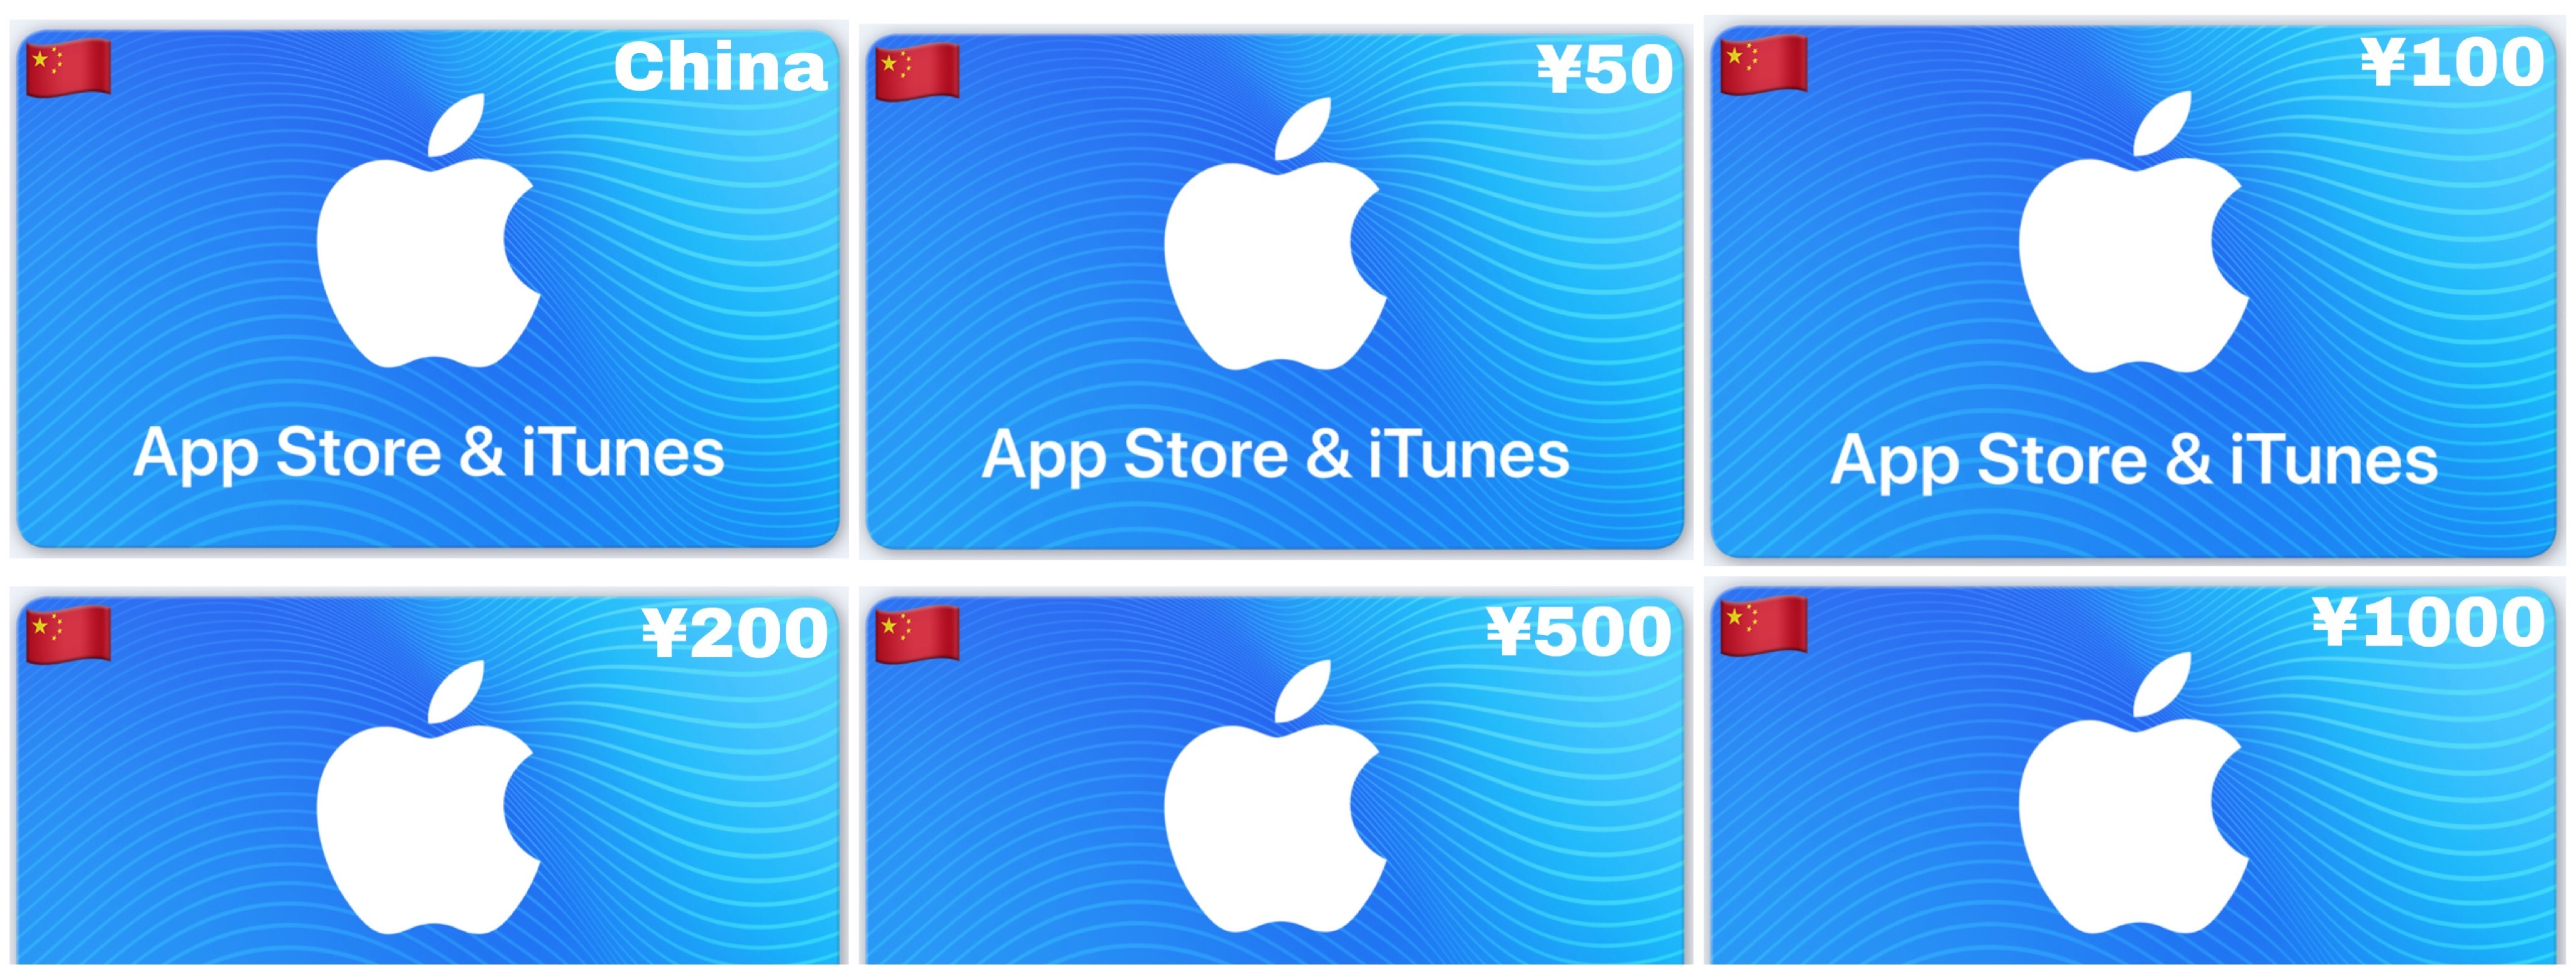 Apple App Store & iTunes Gift Card China ¥50 ¥100 ¥200 ¥500 ¥1000